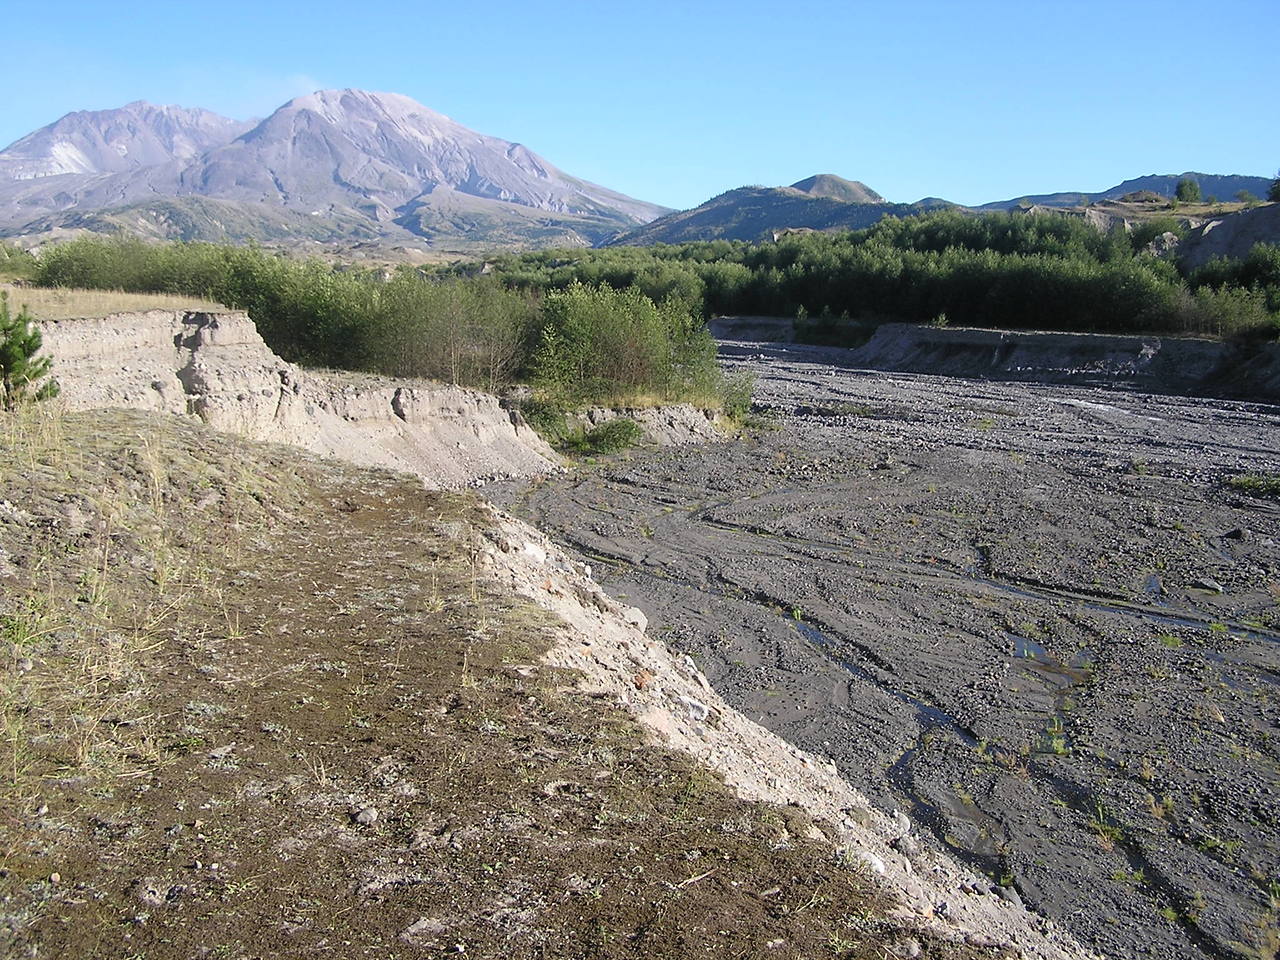 Looking upriver.  The river bed is 60 to 300 feet higher in elevation than before the May 18 eruption.  The eruption moved volcanic rock and ash down the river.